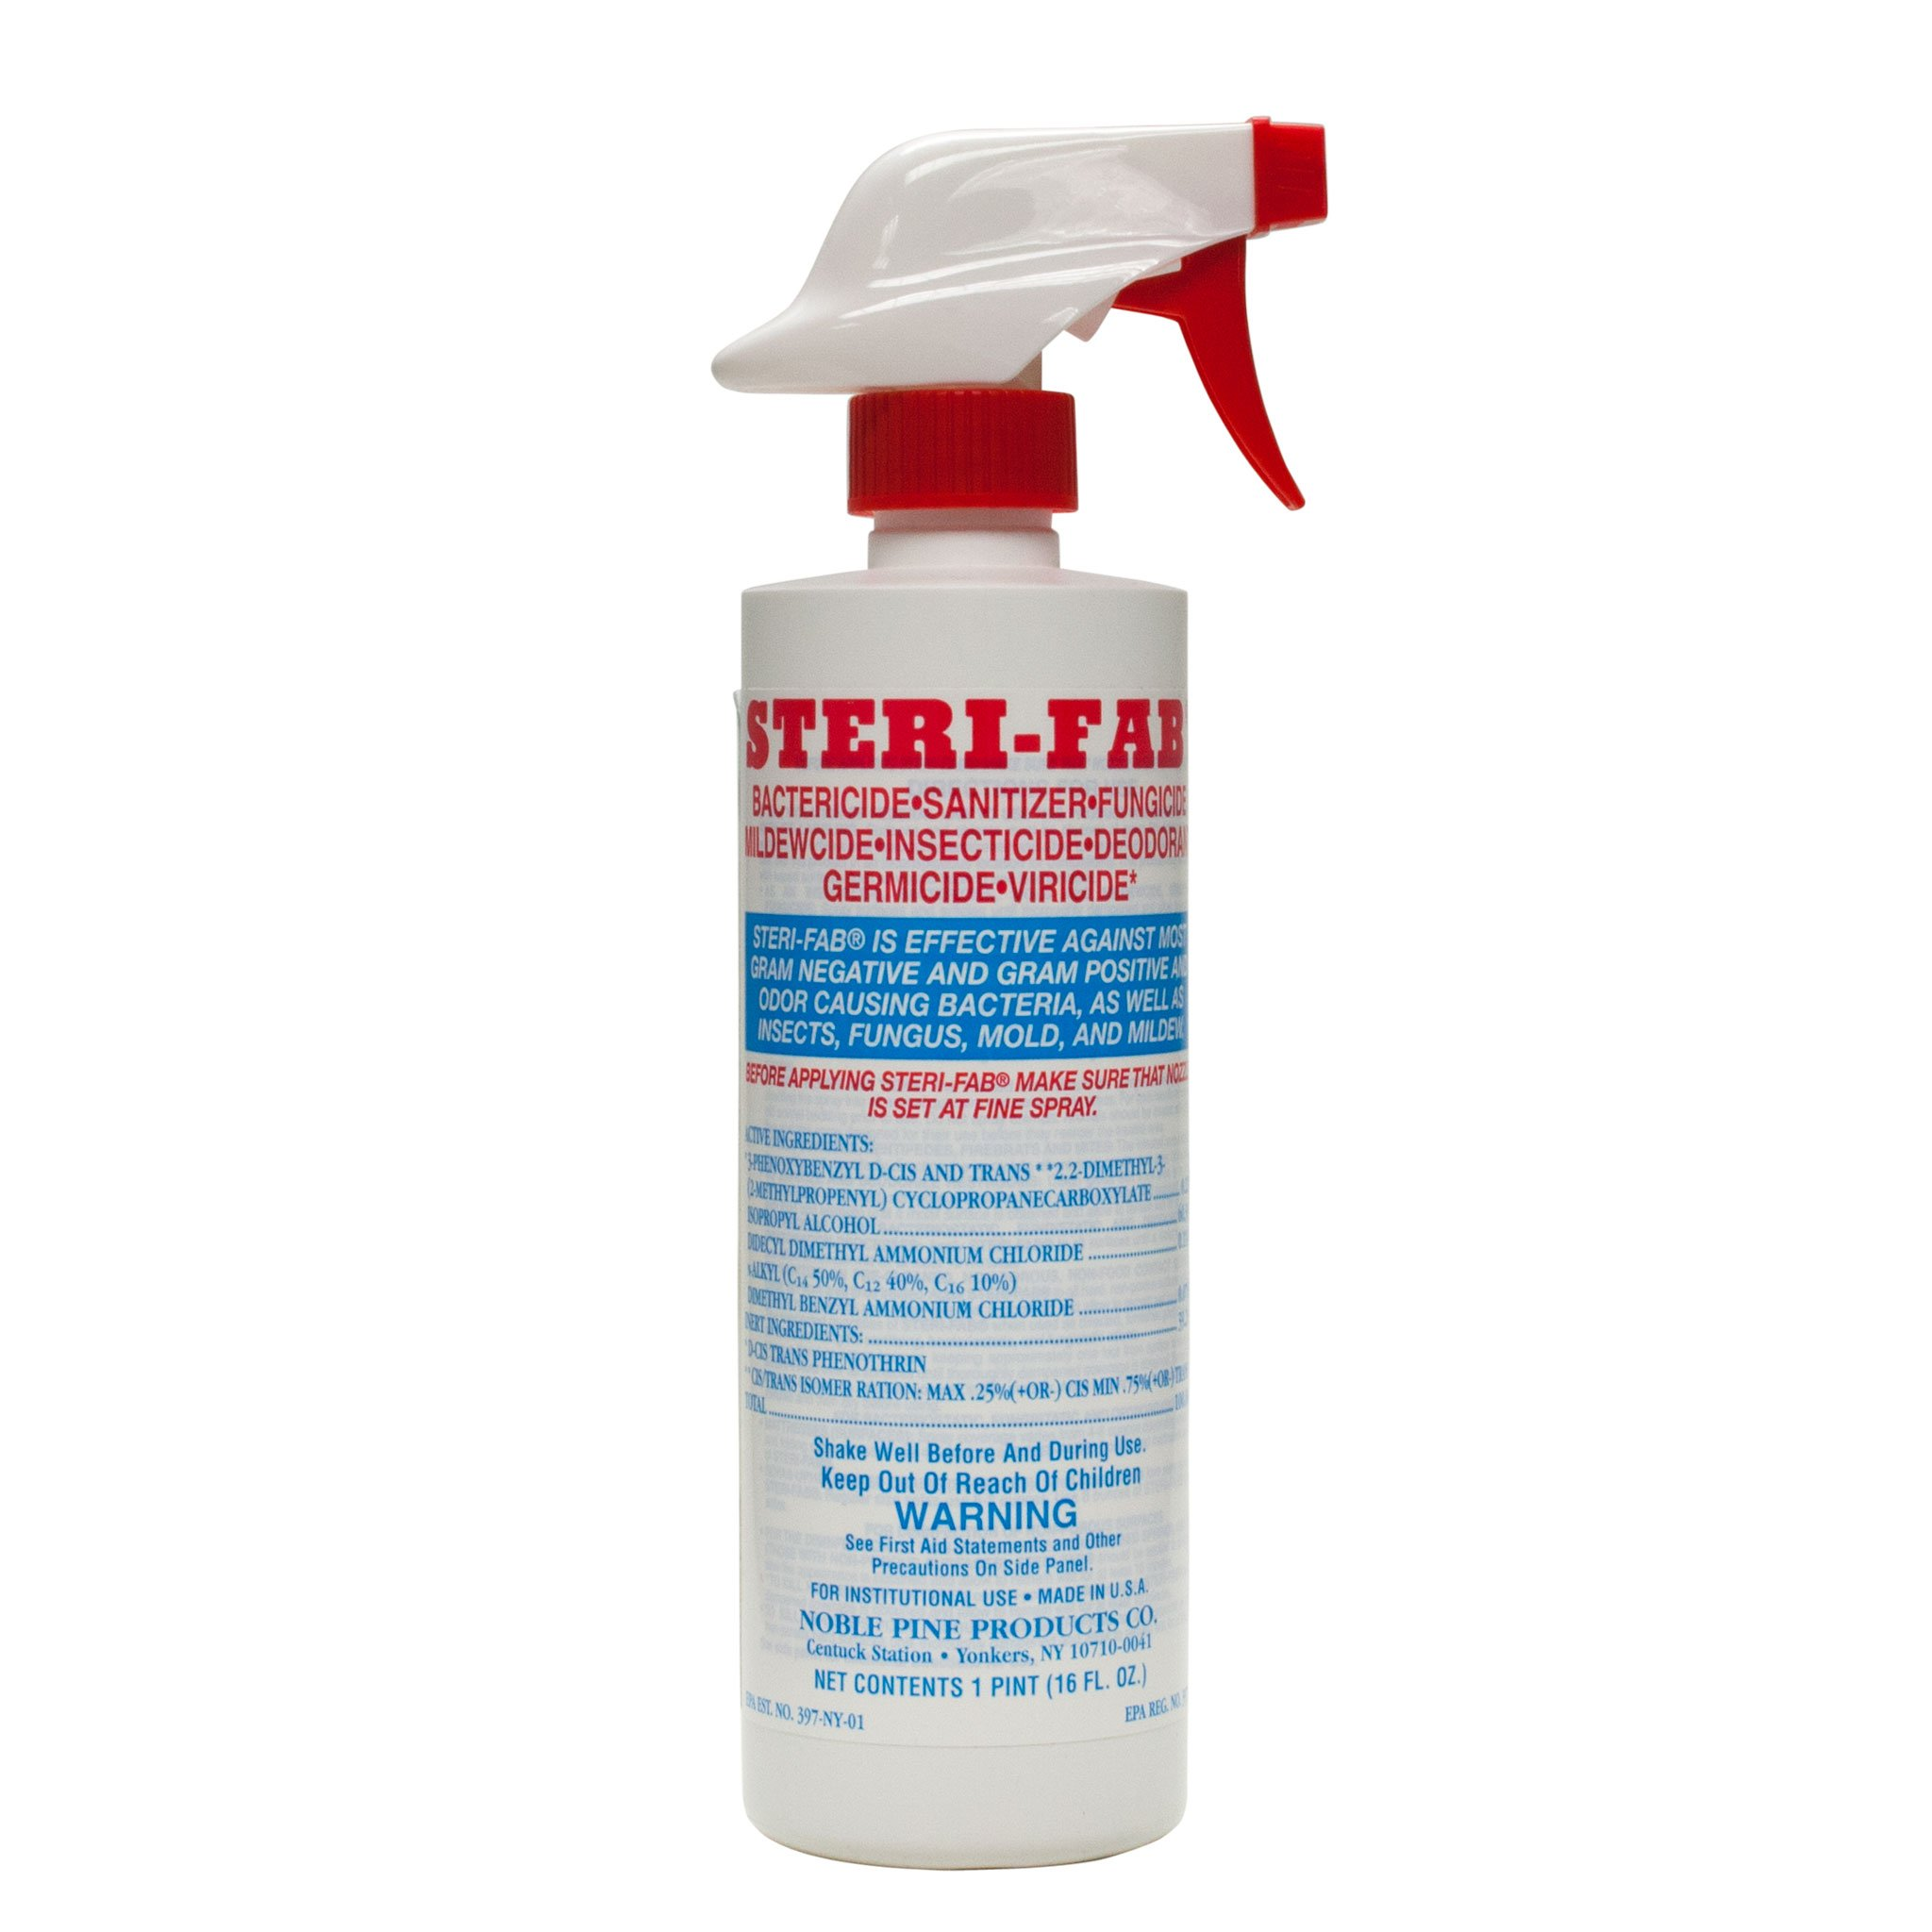 Steri Fab Bed Bugs Spray -16 Oz.-3 Bottles